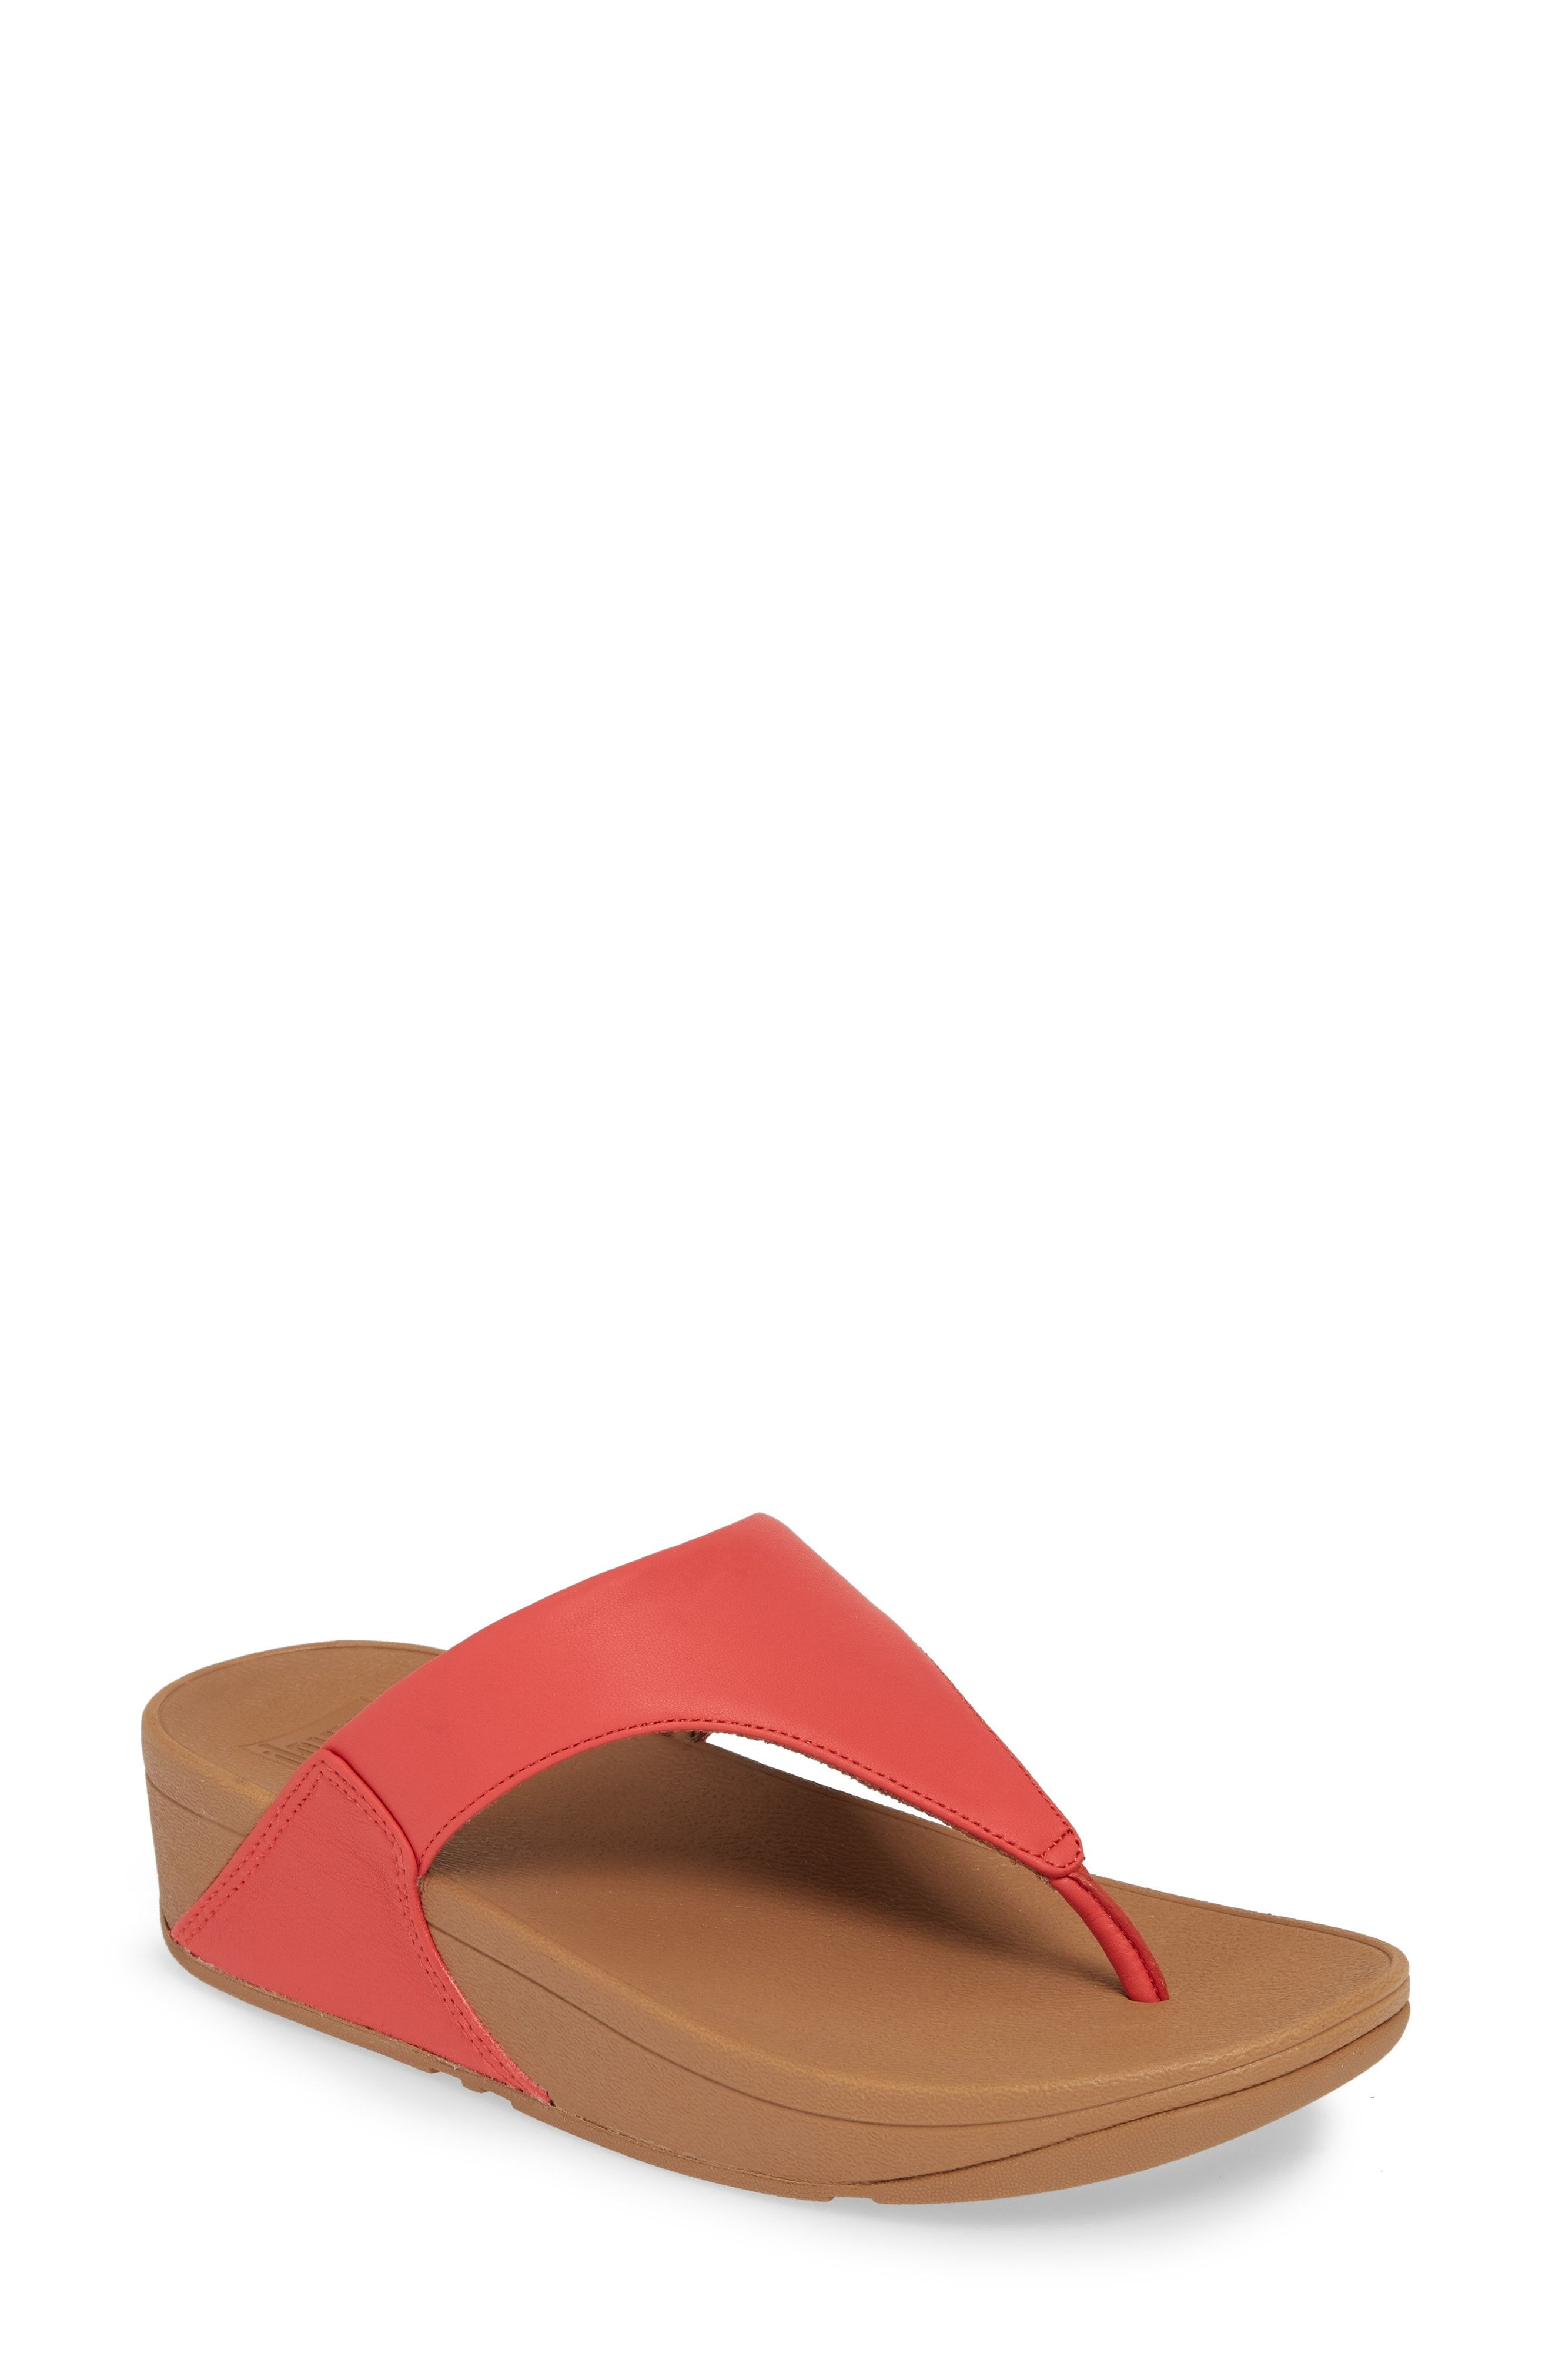 2548c15681 15 Comfortable Walking Sandals For Women That Are Also Super Cute